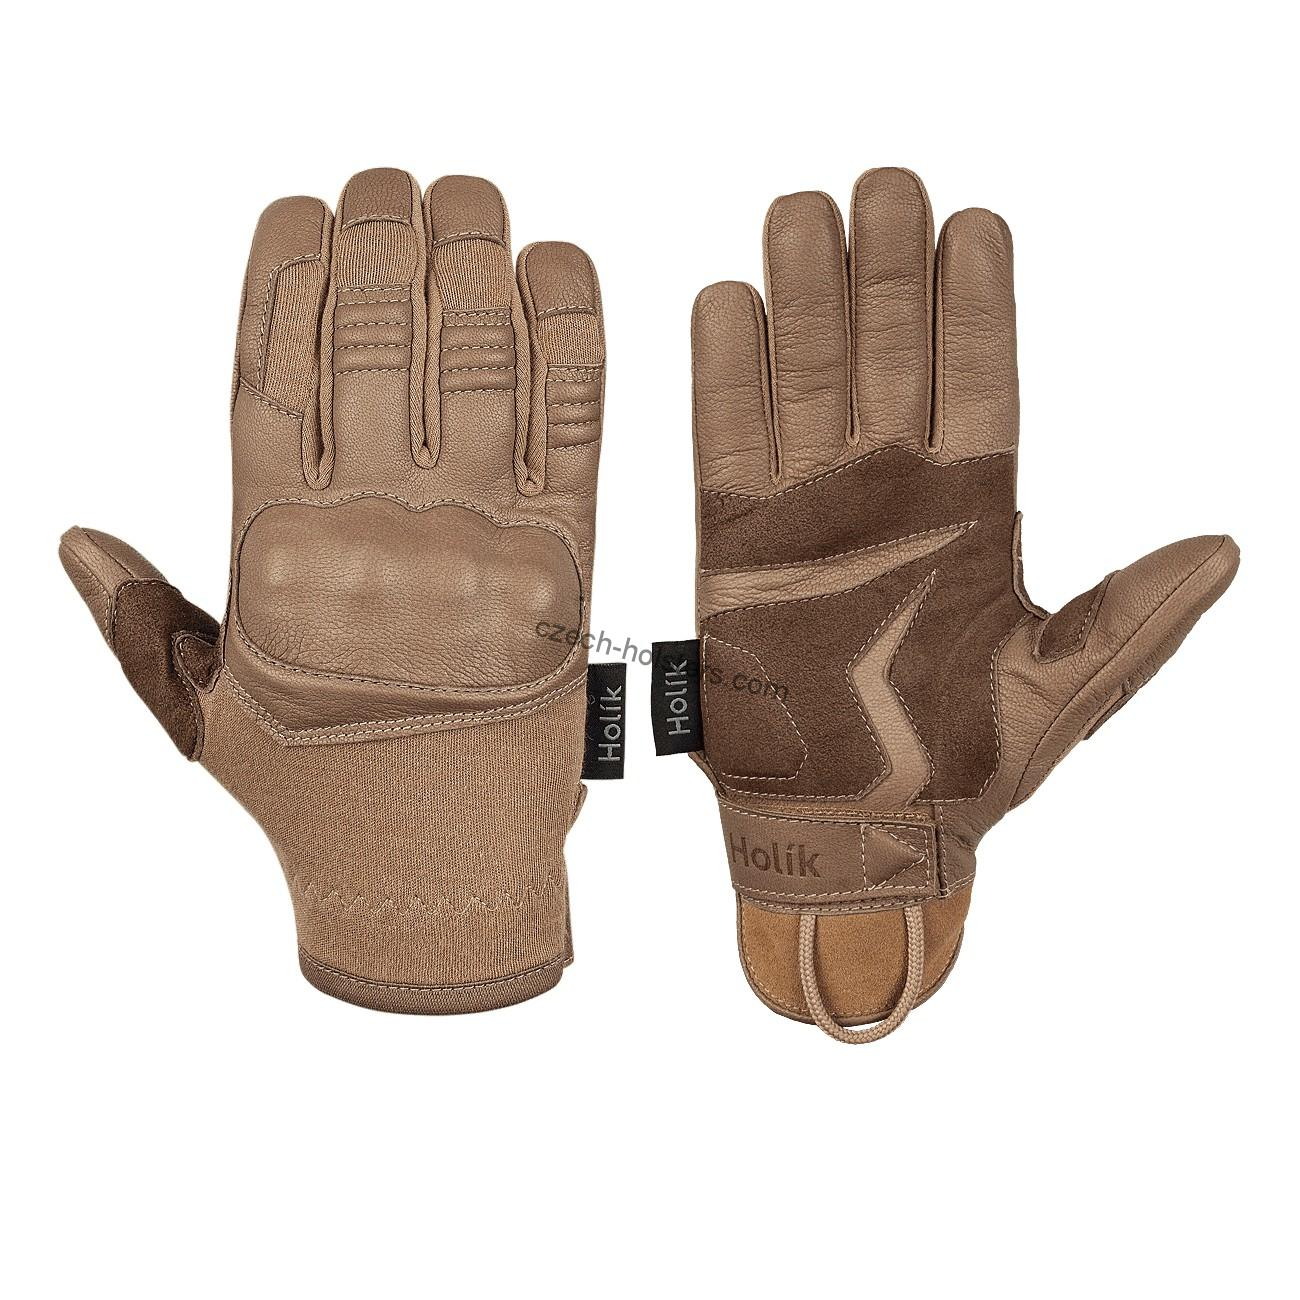 Heavy Duty Gloves BETH - Coyote